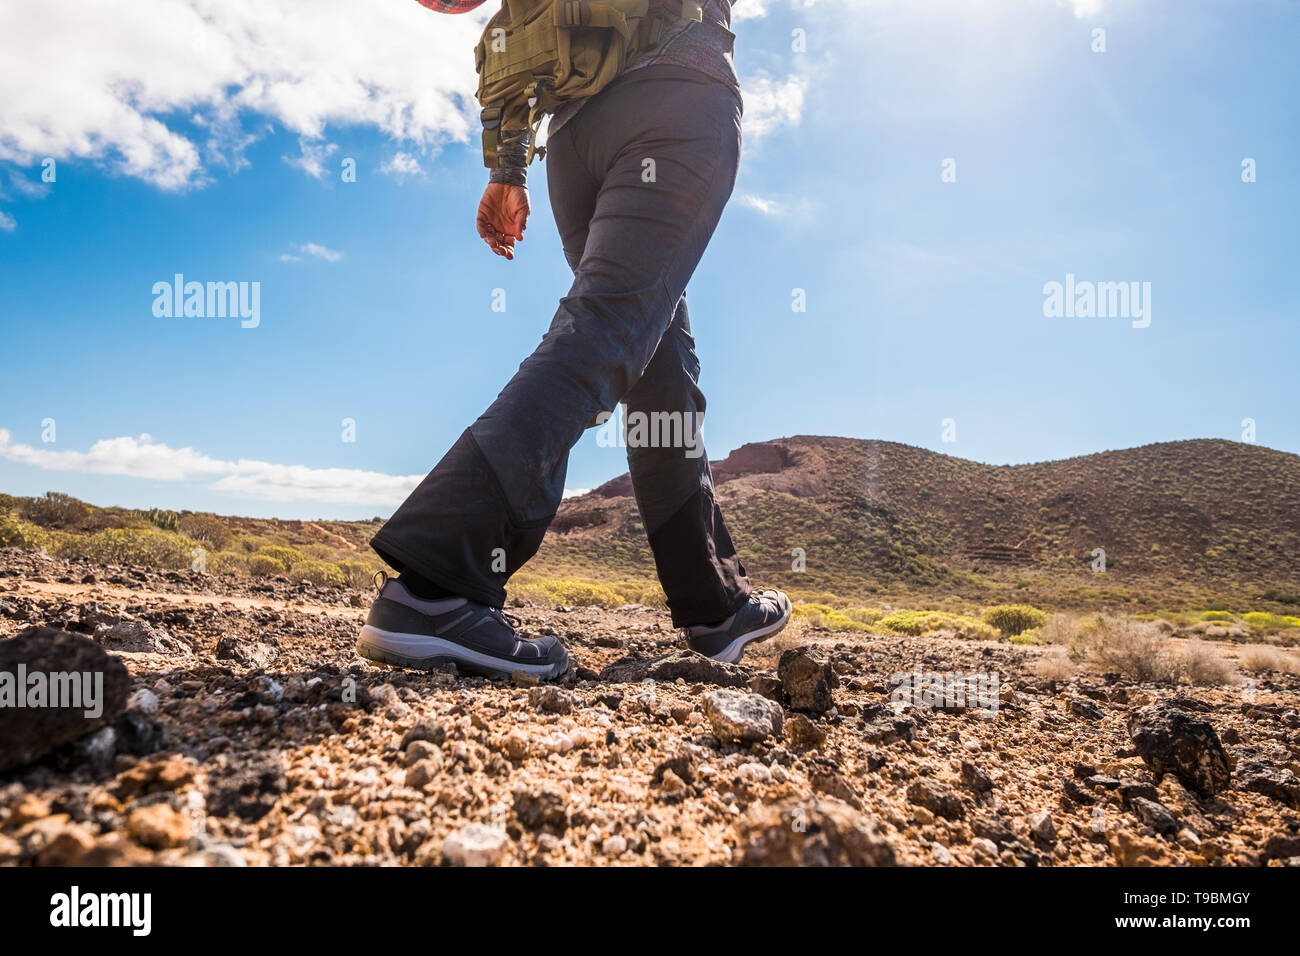 Unrecognizable people lady doing trekking outdoor sport activity in the mountains viewed from back - backpack adventure and enjoying nature - freedom  - Stock Image